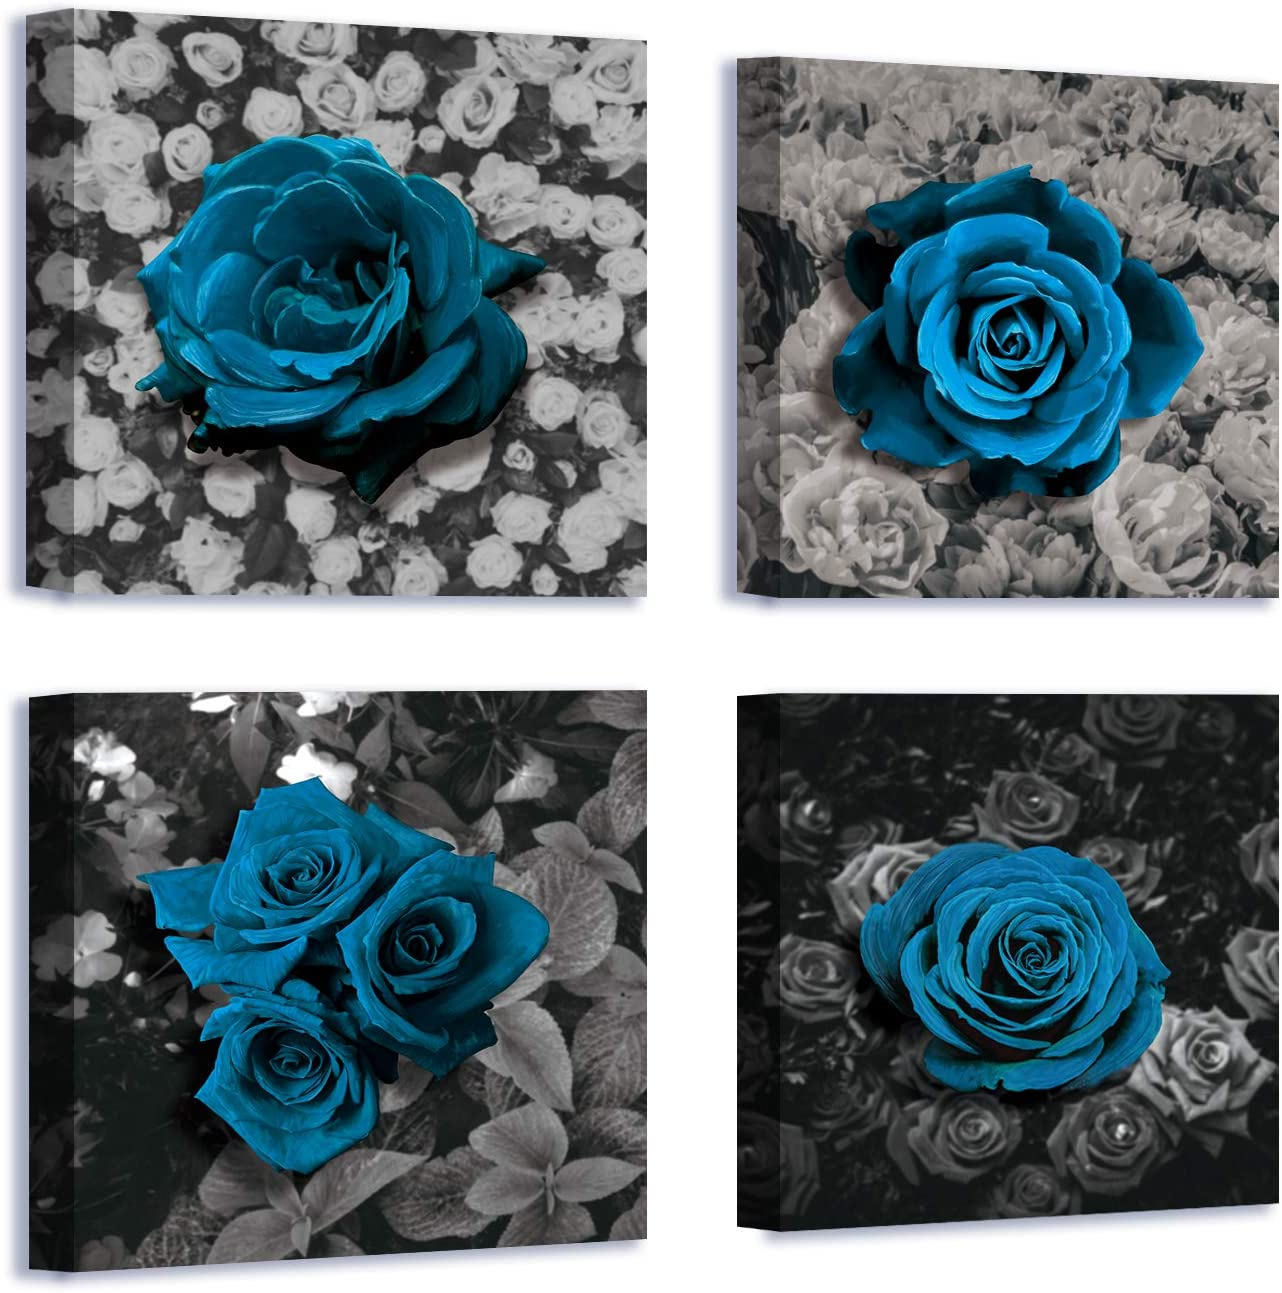 Flower Wall Art Canvas Black and White Blue Rose Framed Painting for Living Room Bathroom Home Decor Ready to Hang 12x12 inch/piece, 4 Panels…